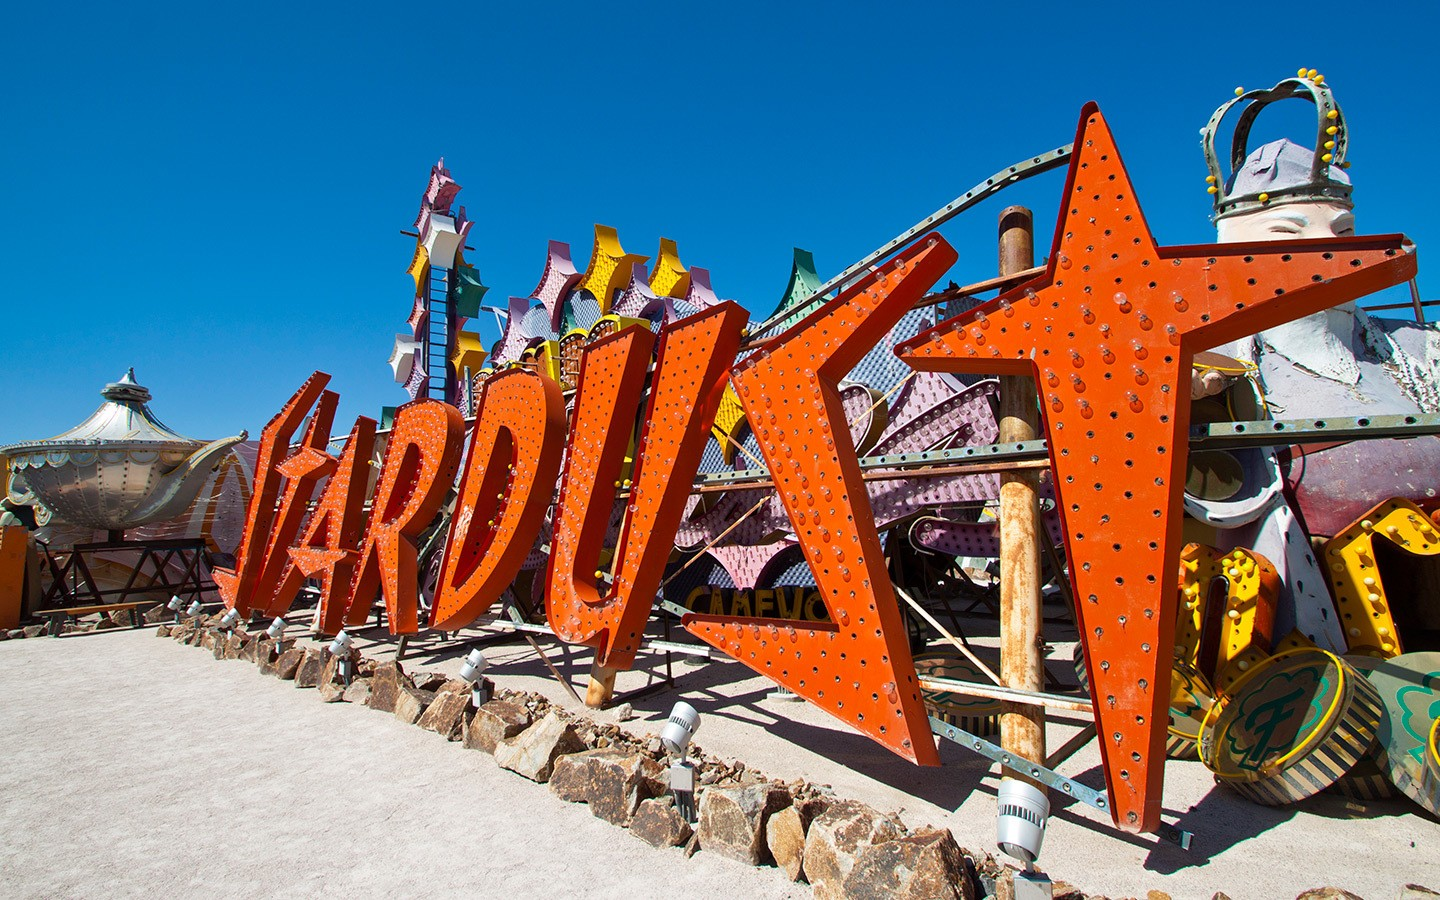 Las Vegas Neon Museum and Boneyard